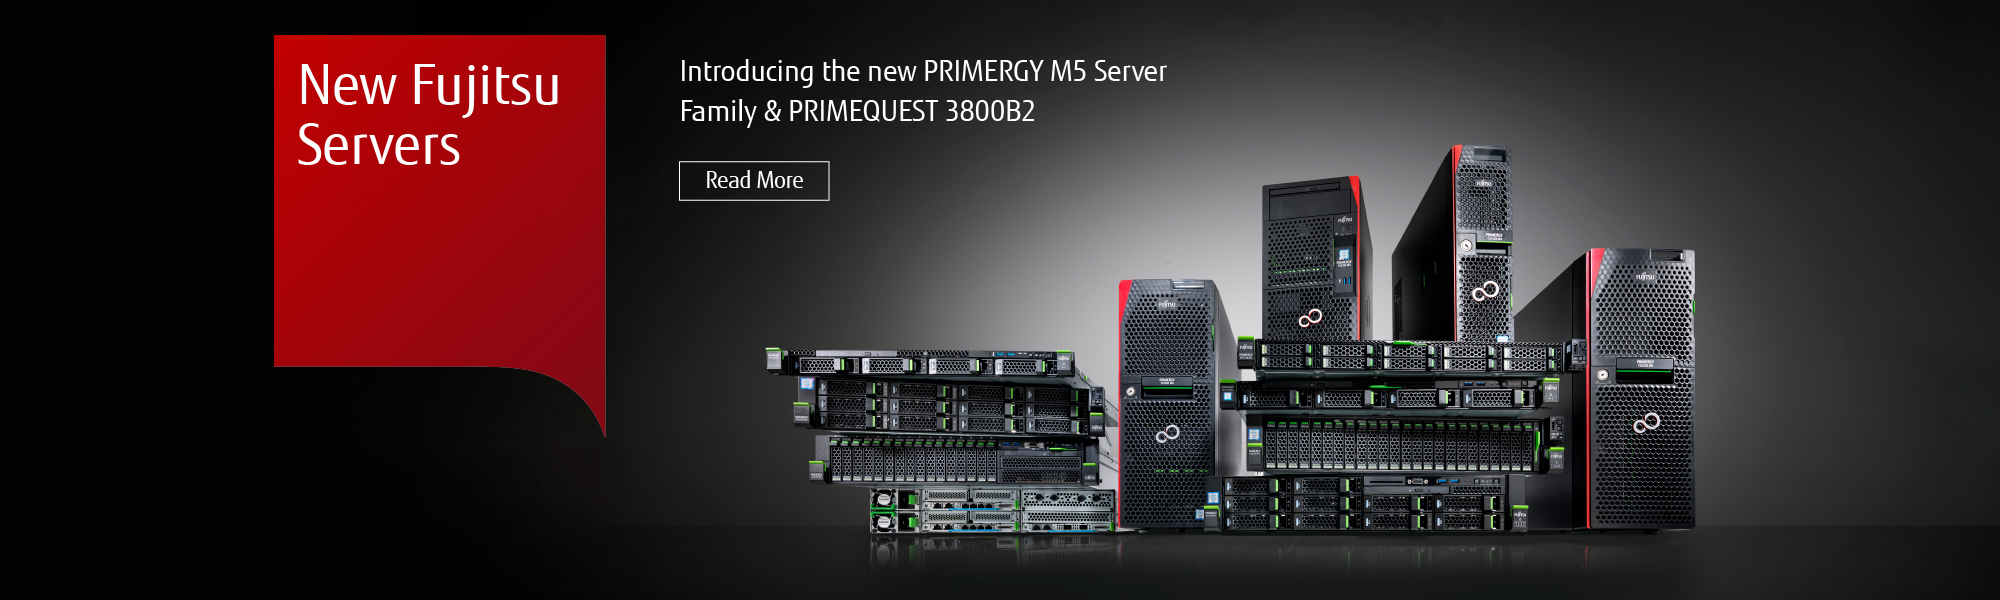 PRIMERGY M5 Server Family